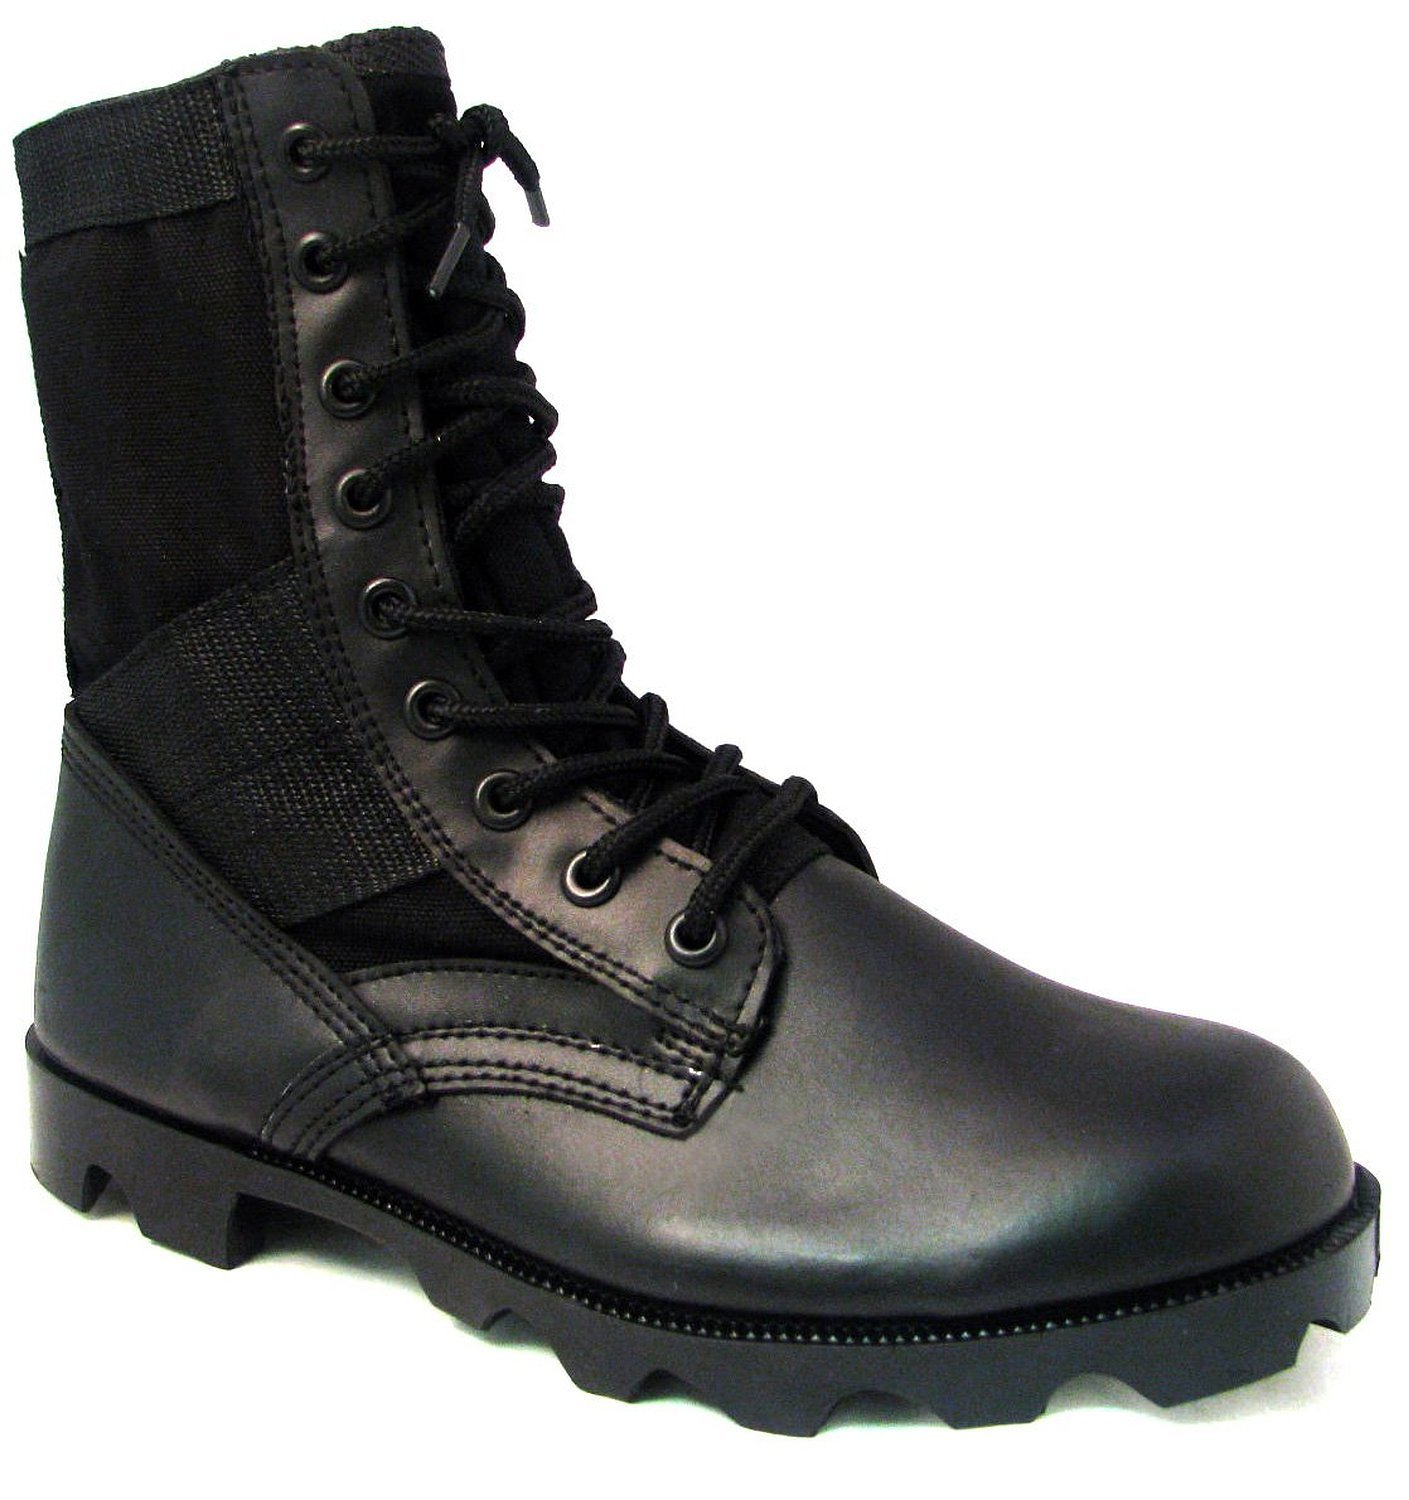 Men's Jungle Boots G.I. Type Lace up Tactical Combat Military Work Shoes Width: Wide (W or 2E) (9 W US, Black)